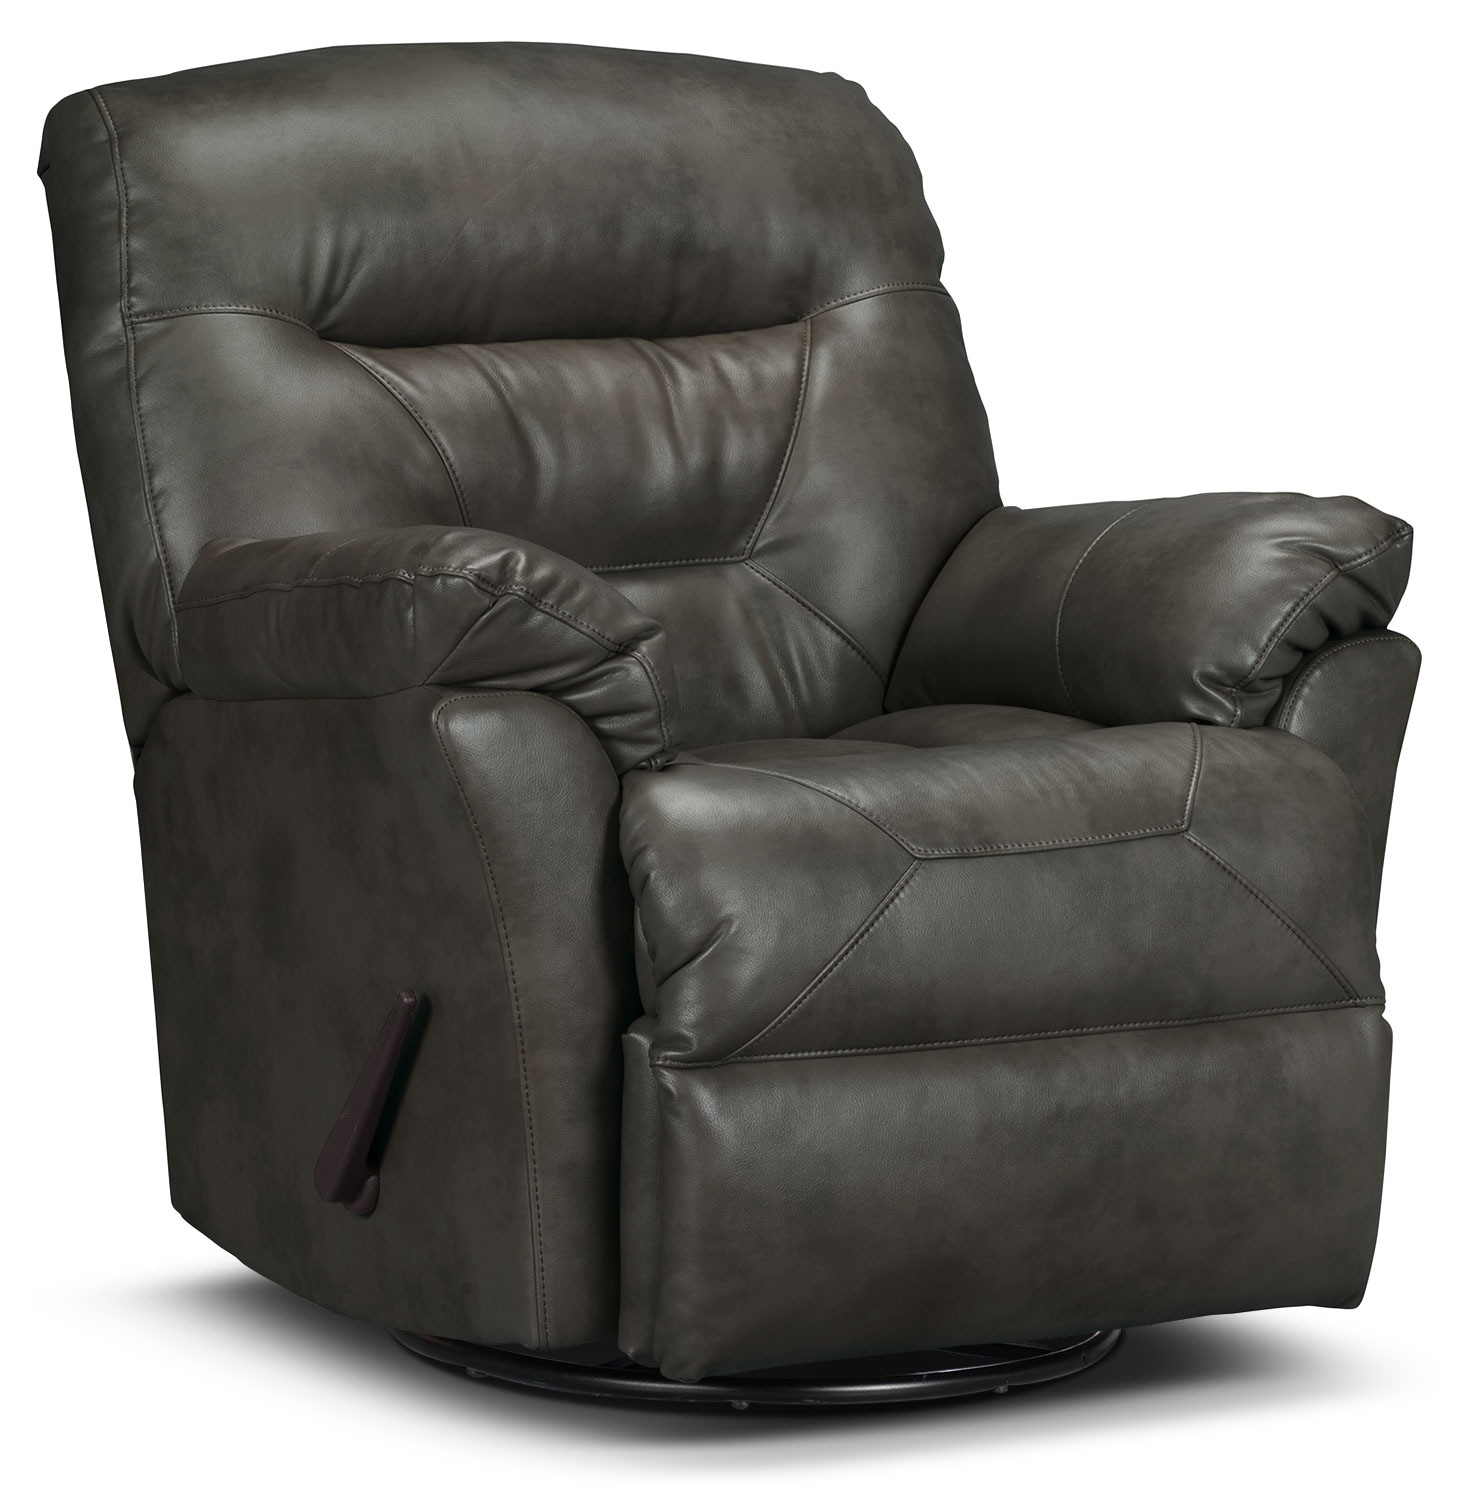 Living Room Furniture - Designed2B Recliner 4579 Leather-Look Fabric Swivel Glider Recliner - Seal